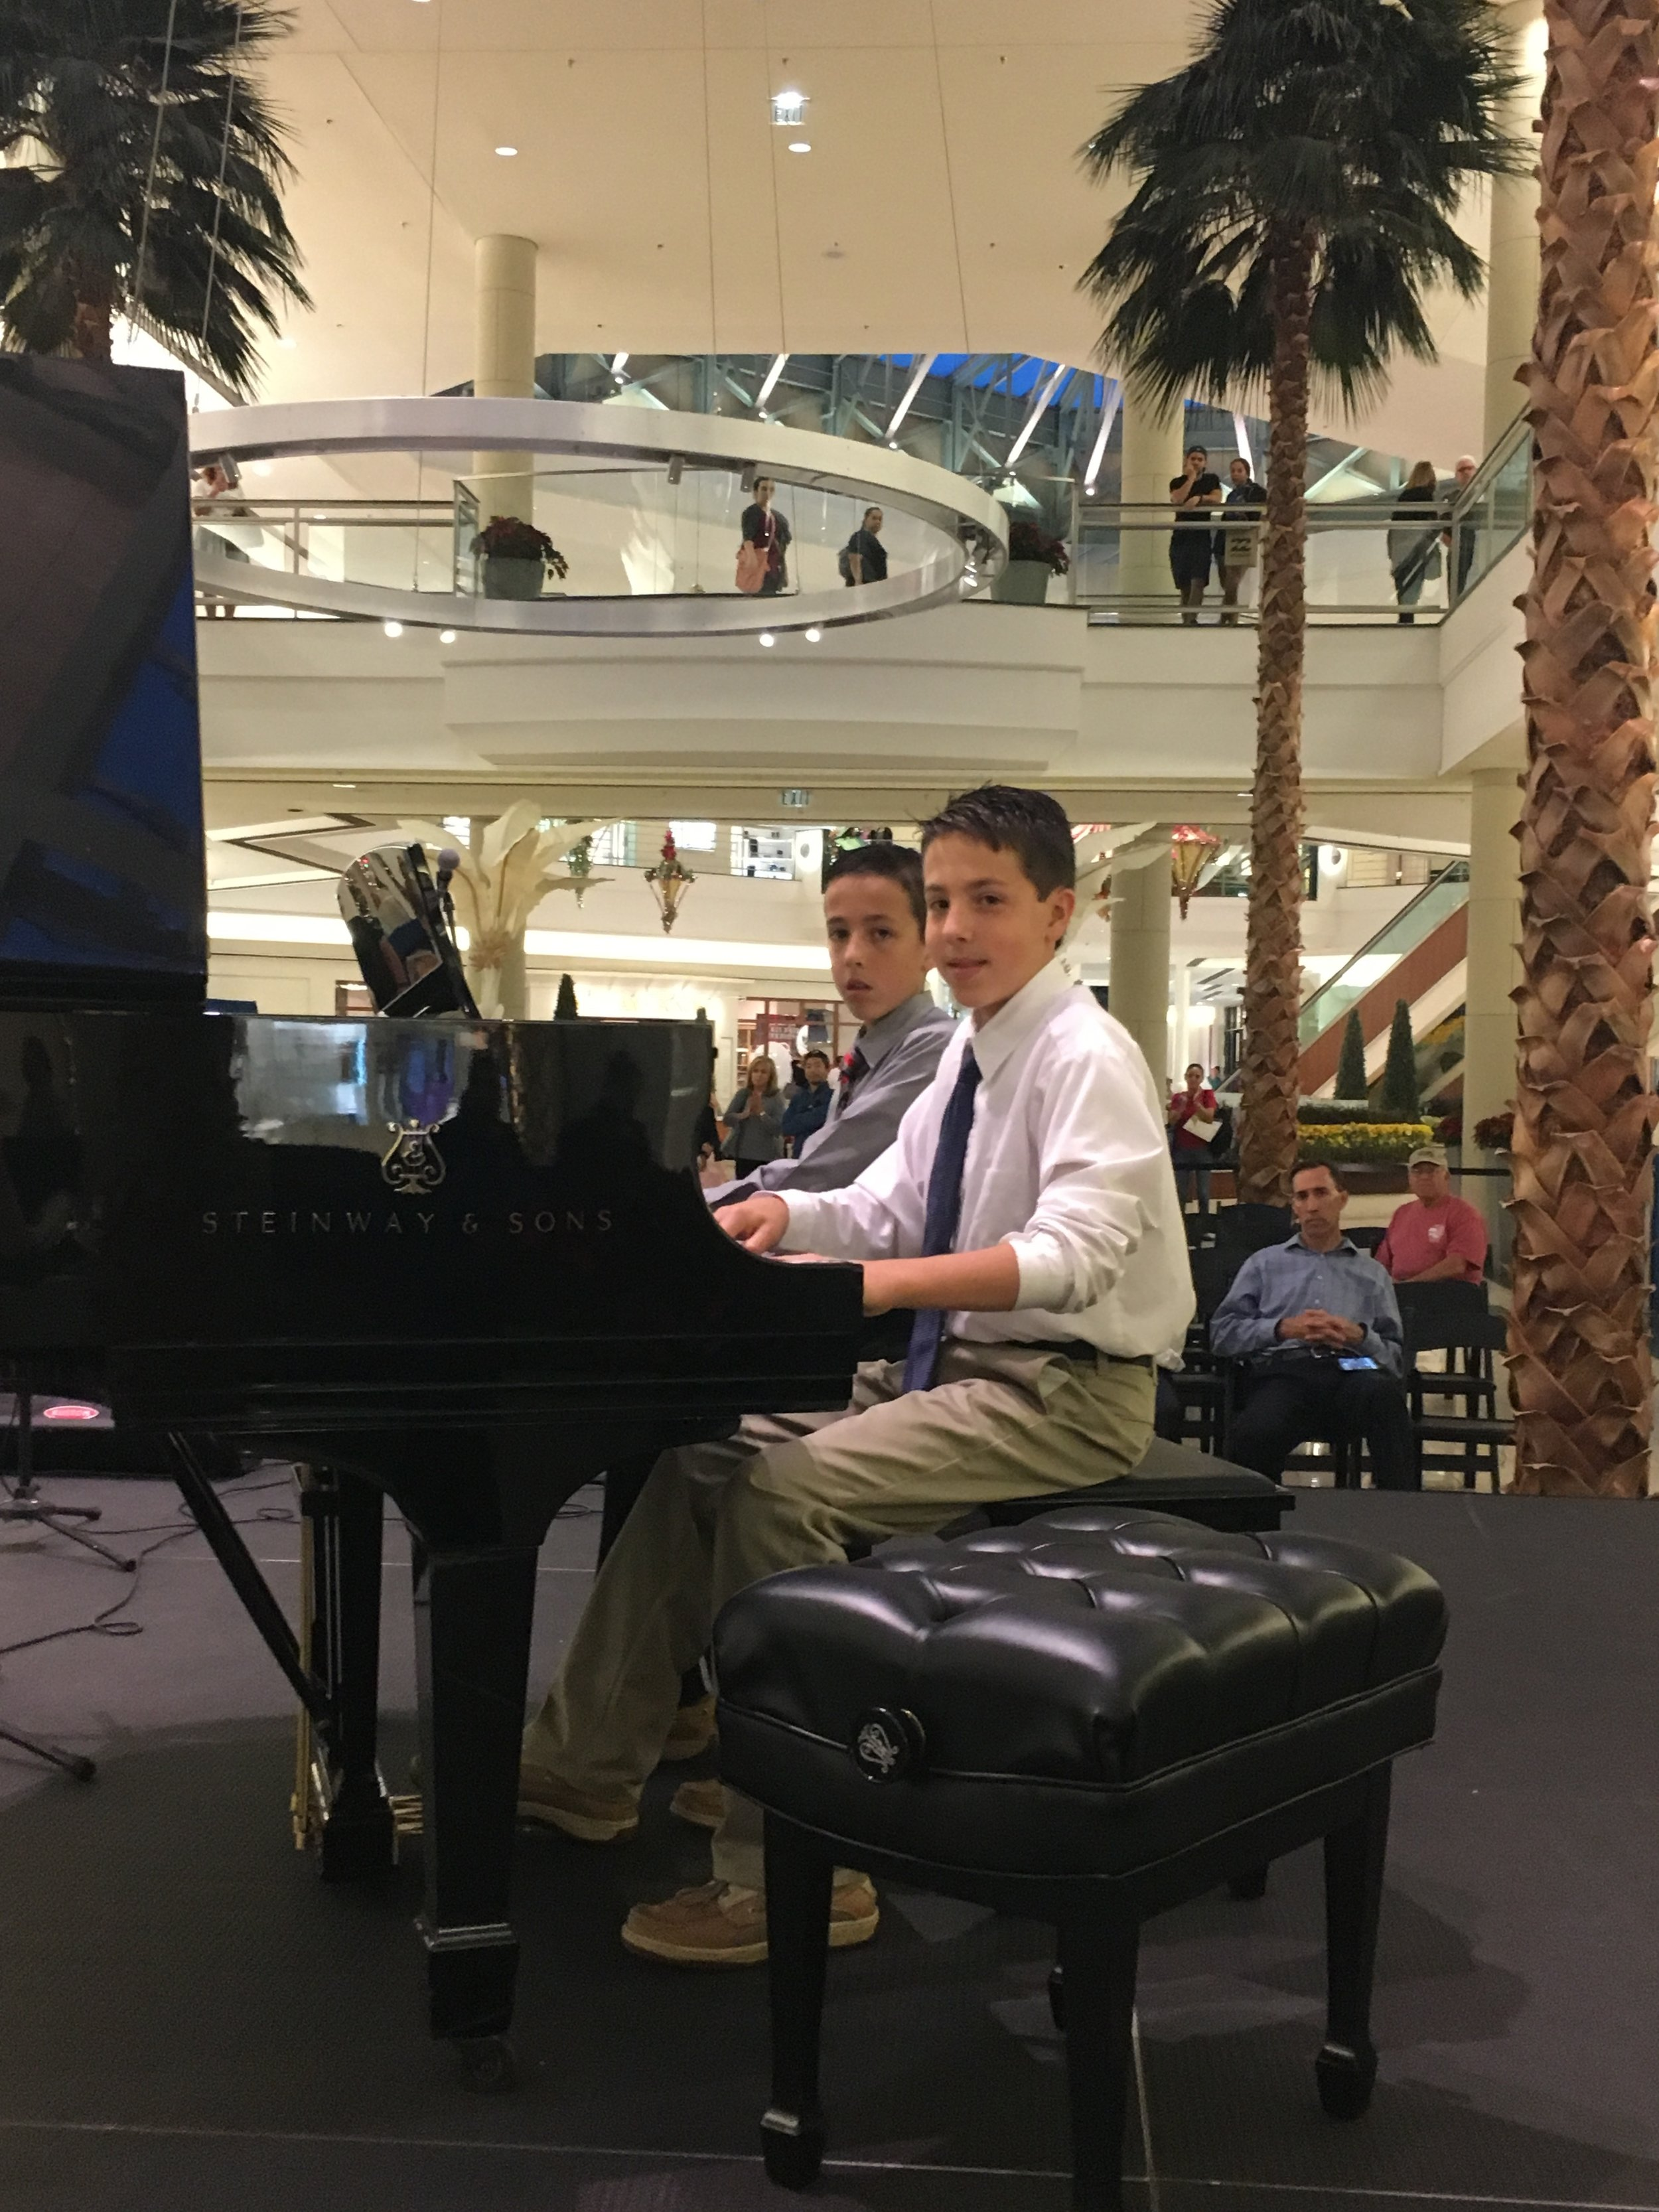 The Porter Brothers performing along with 20 other JAM students at the Gardens Mall.